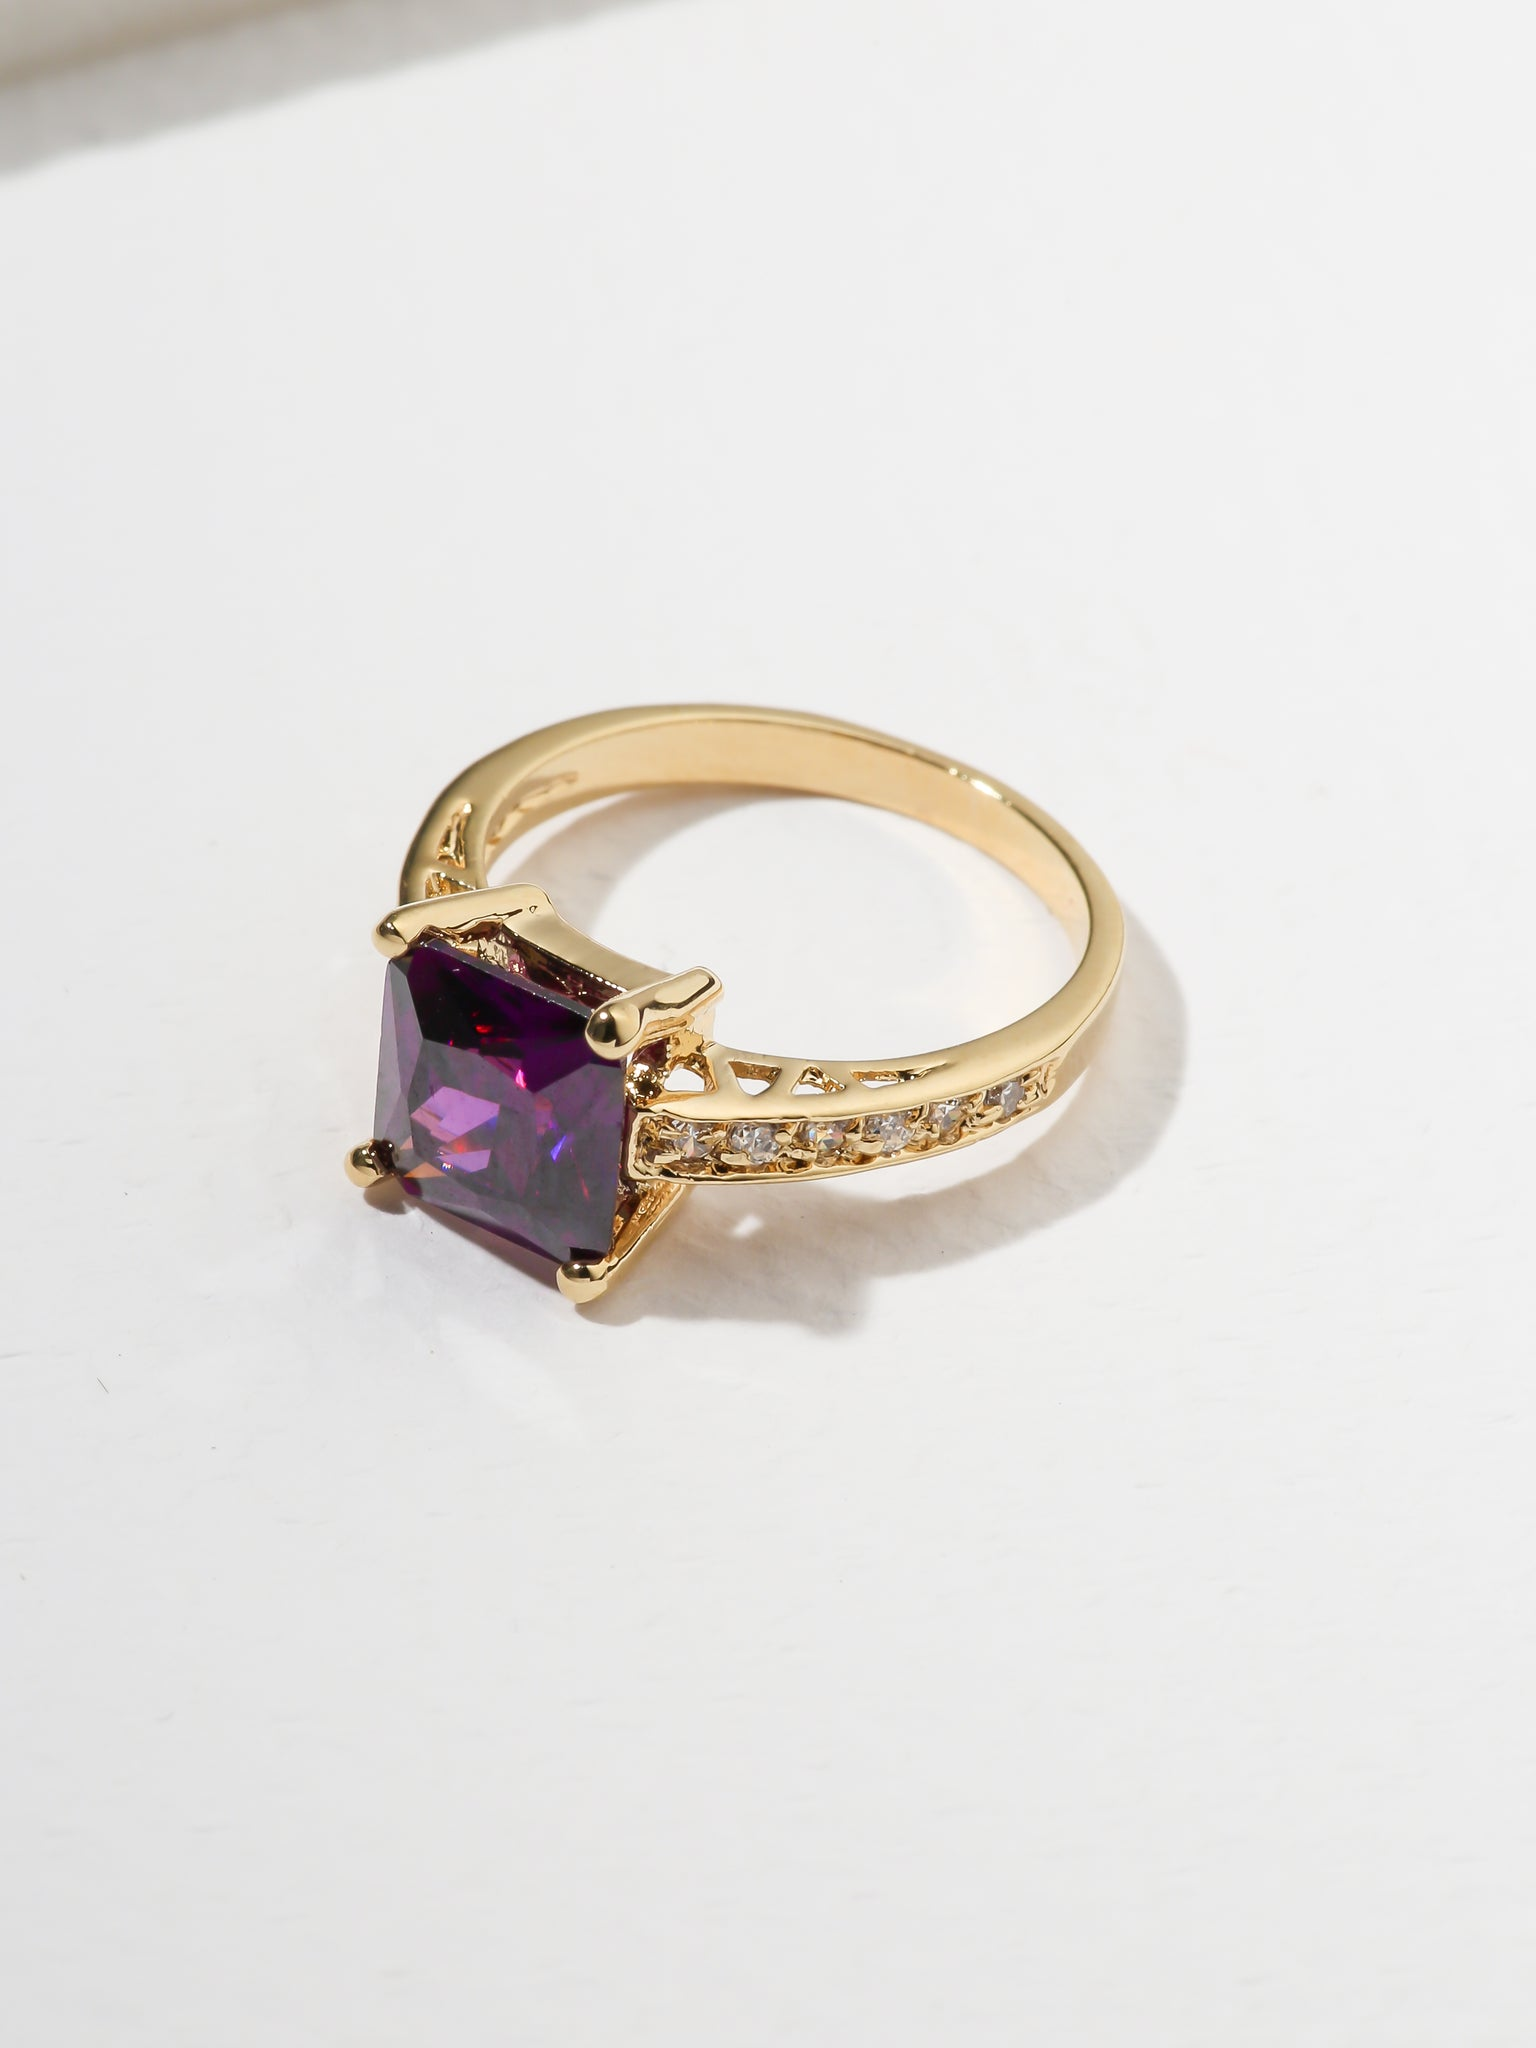 Sale Items The Future Ring - Purple Vanessa Mooney